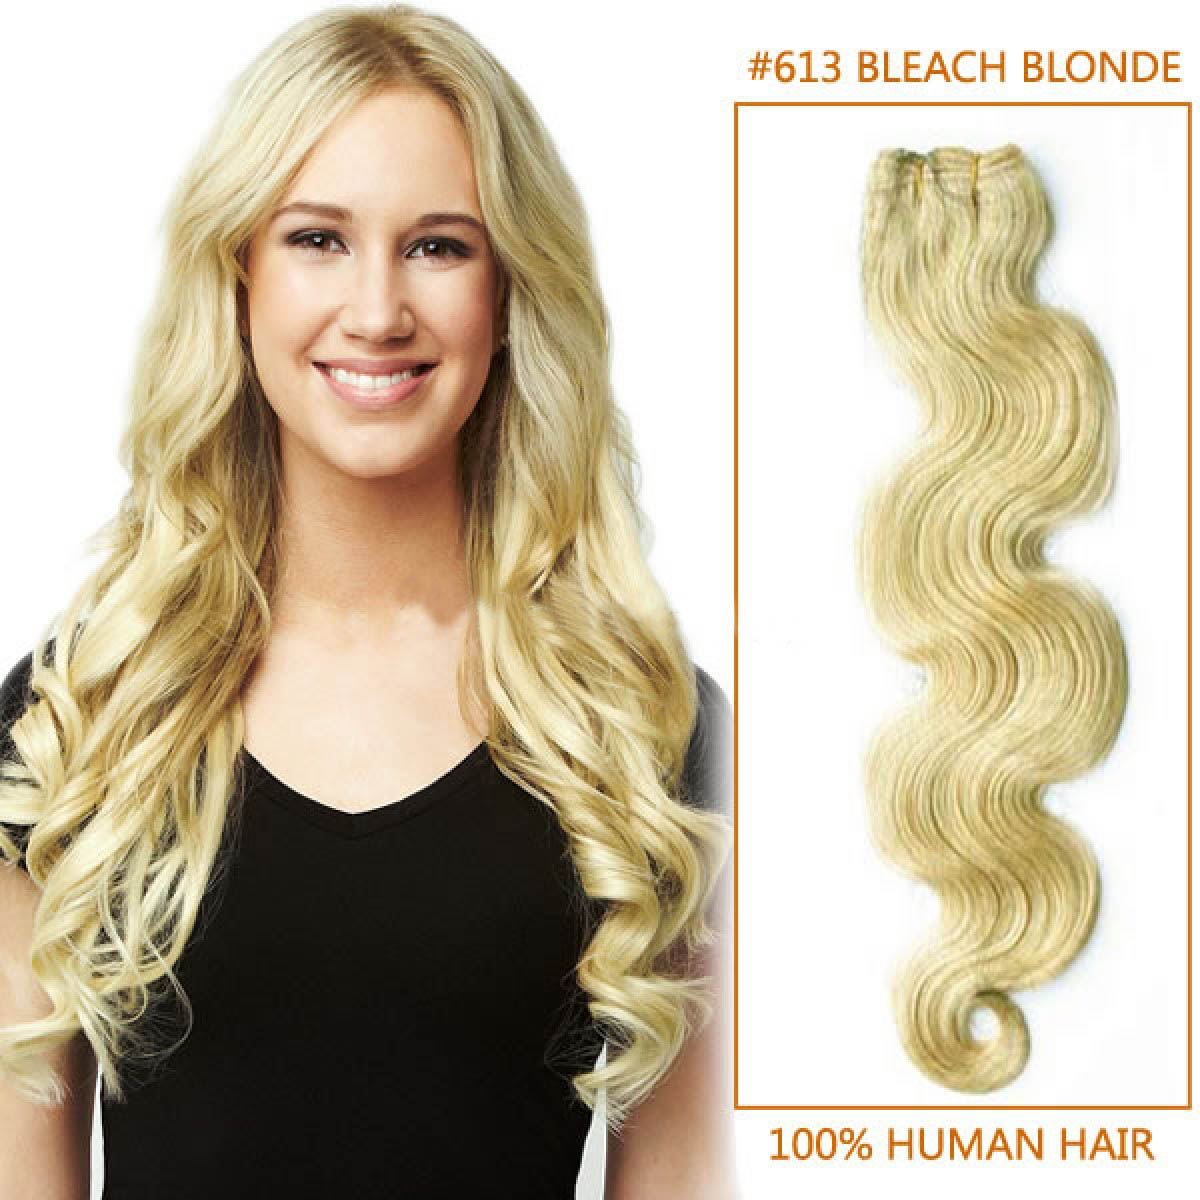 24 Inch 613 Bleach Blonde Body Wave Brazilian Virgin Hair Wefts